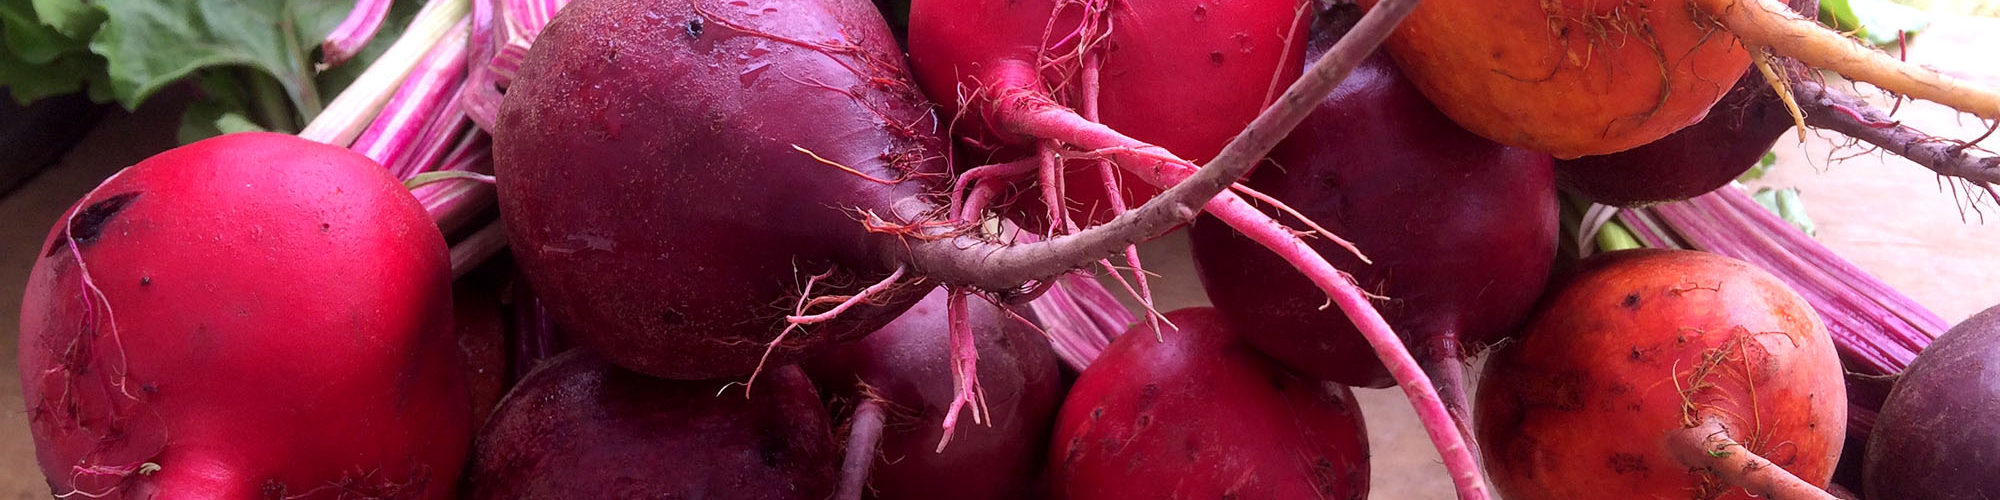 Beets from Full Sun Farm